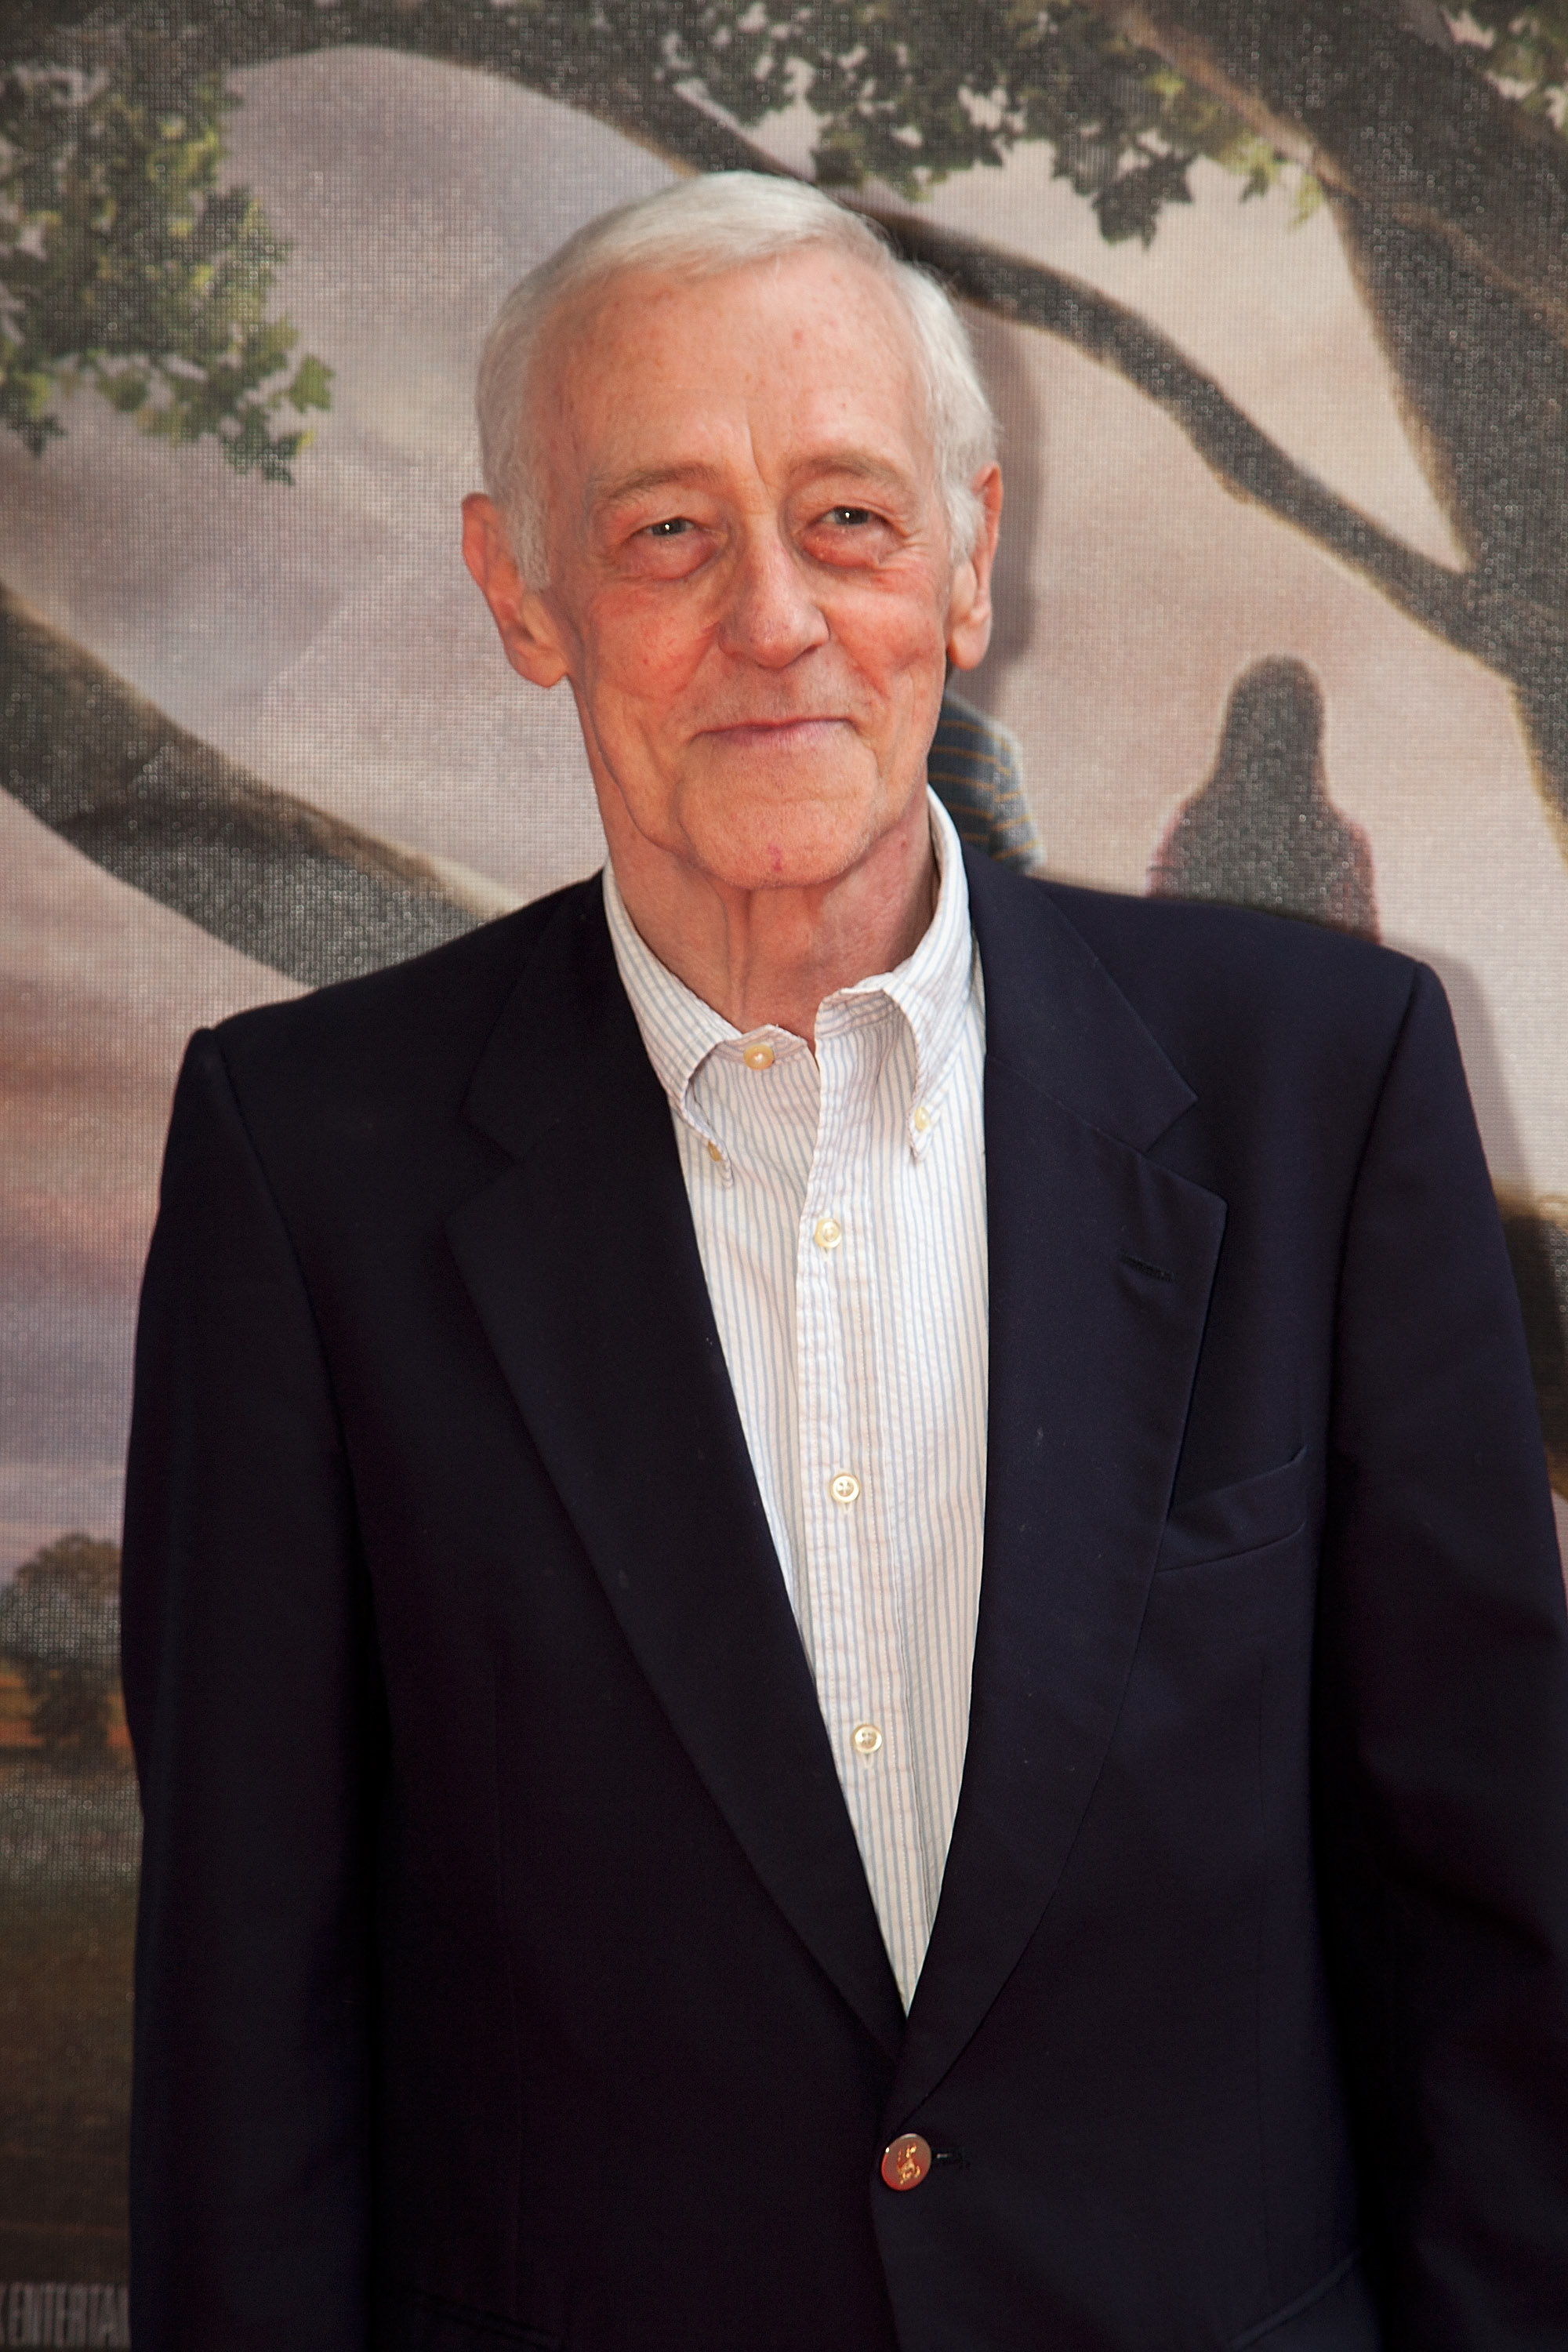 John Mahoney attends the premiere of 'Flipped' at the Hilbert Circle Theatre on August 2, 2010 in Indianapolis, Indiana.